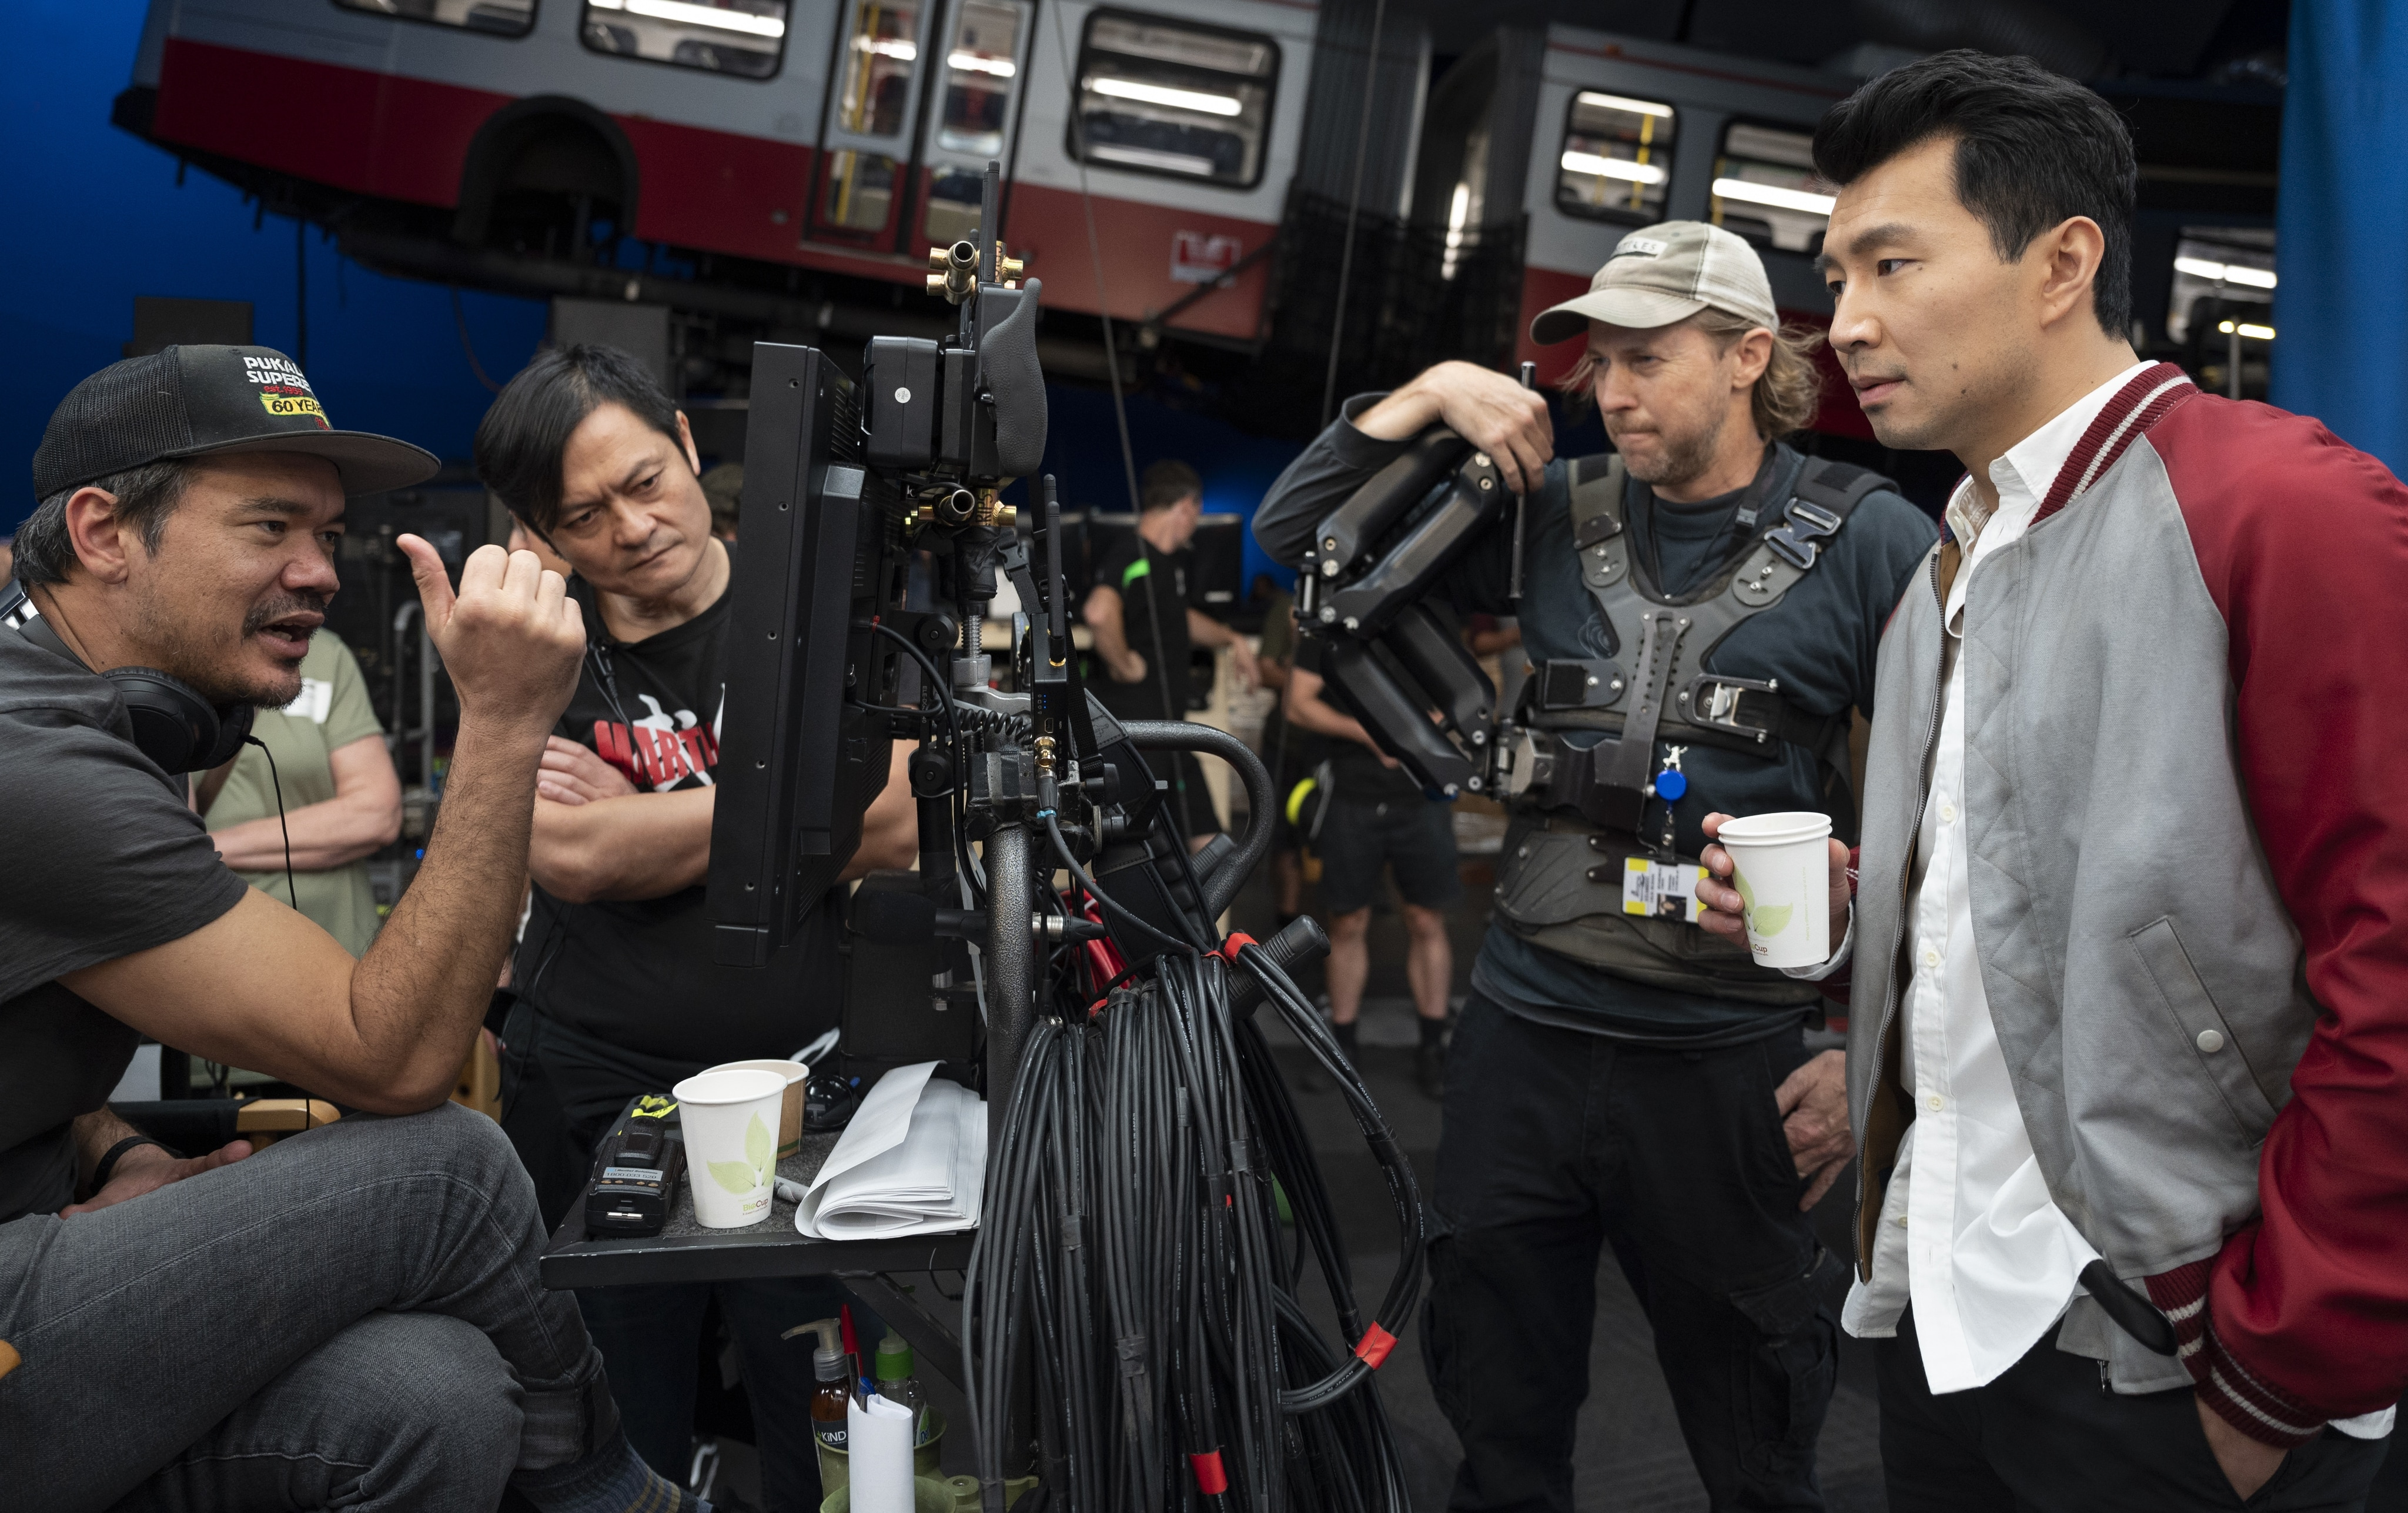 Director Destin Daniel Cretton looks at the monitor and chats with his team, including actor Simu Liu, on set.